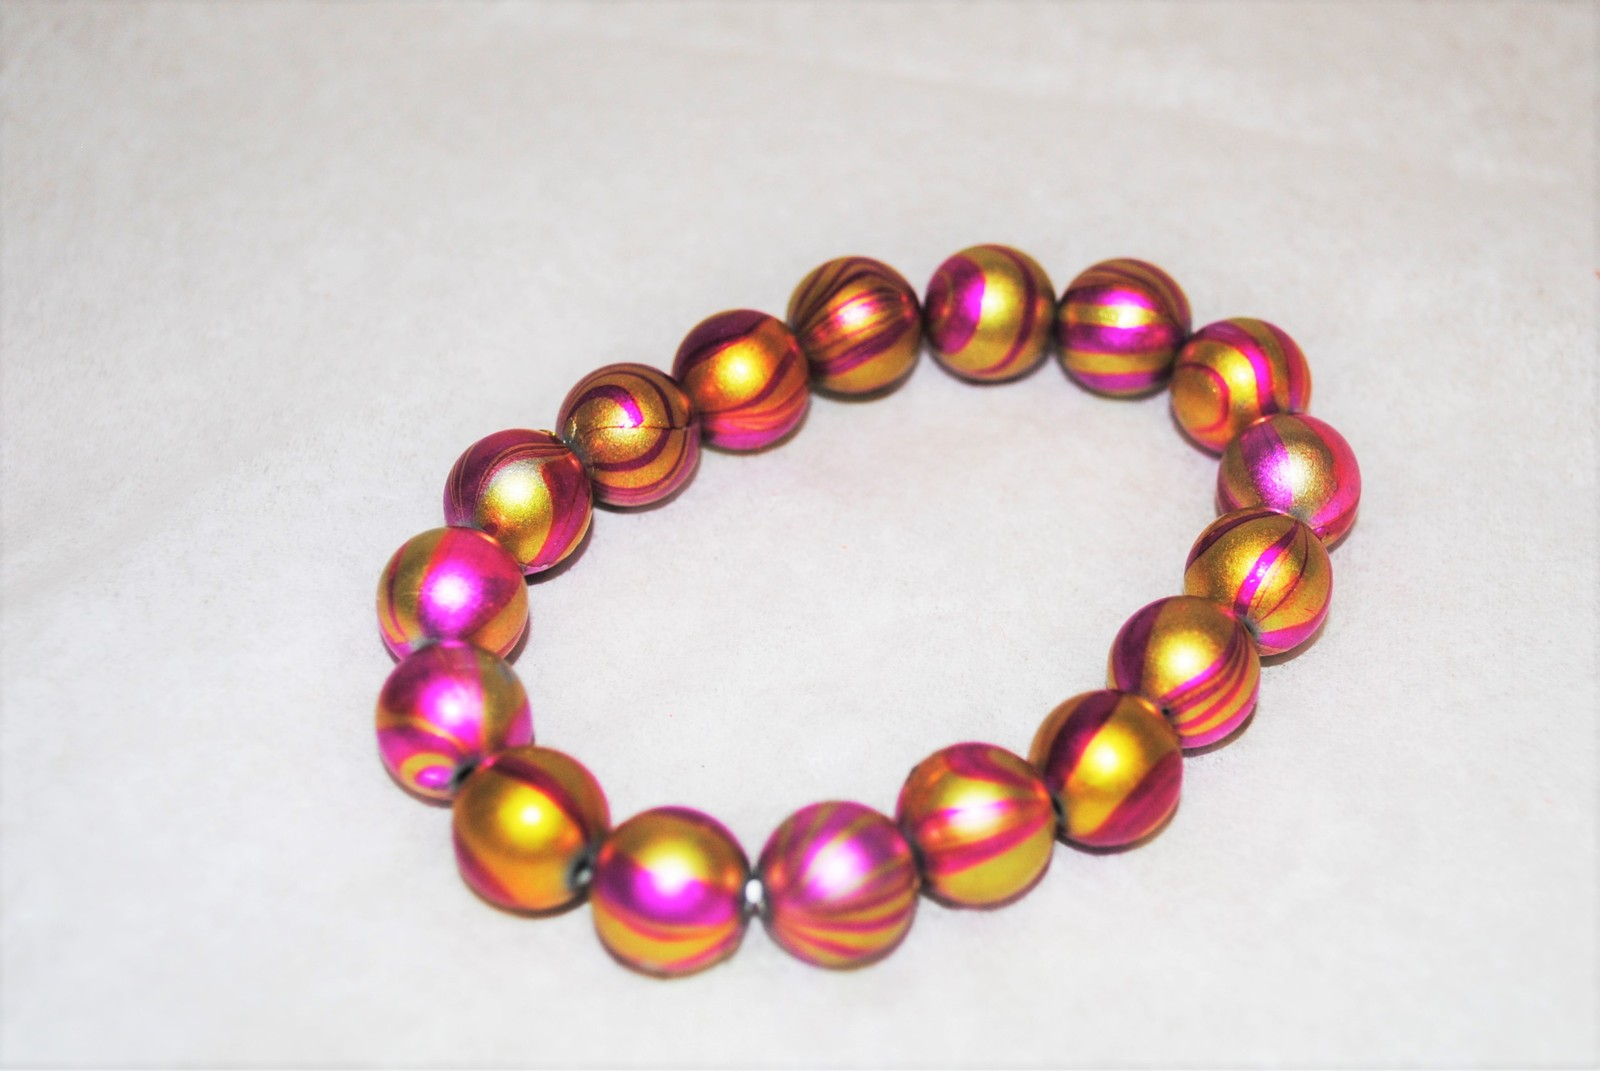 Pink and Gold Acrylic Swirl Bead Stretch Bracelet